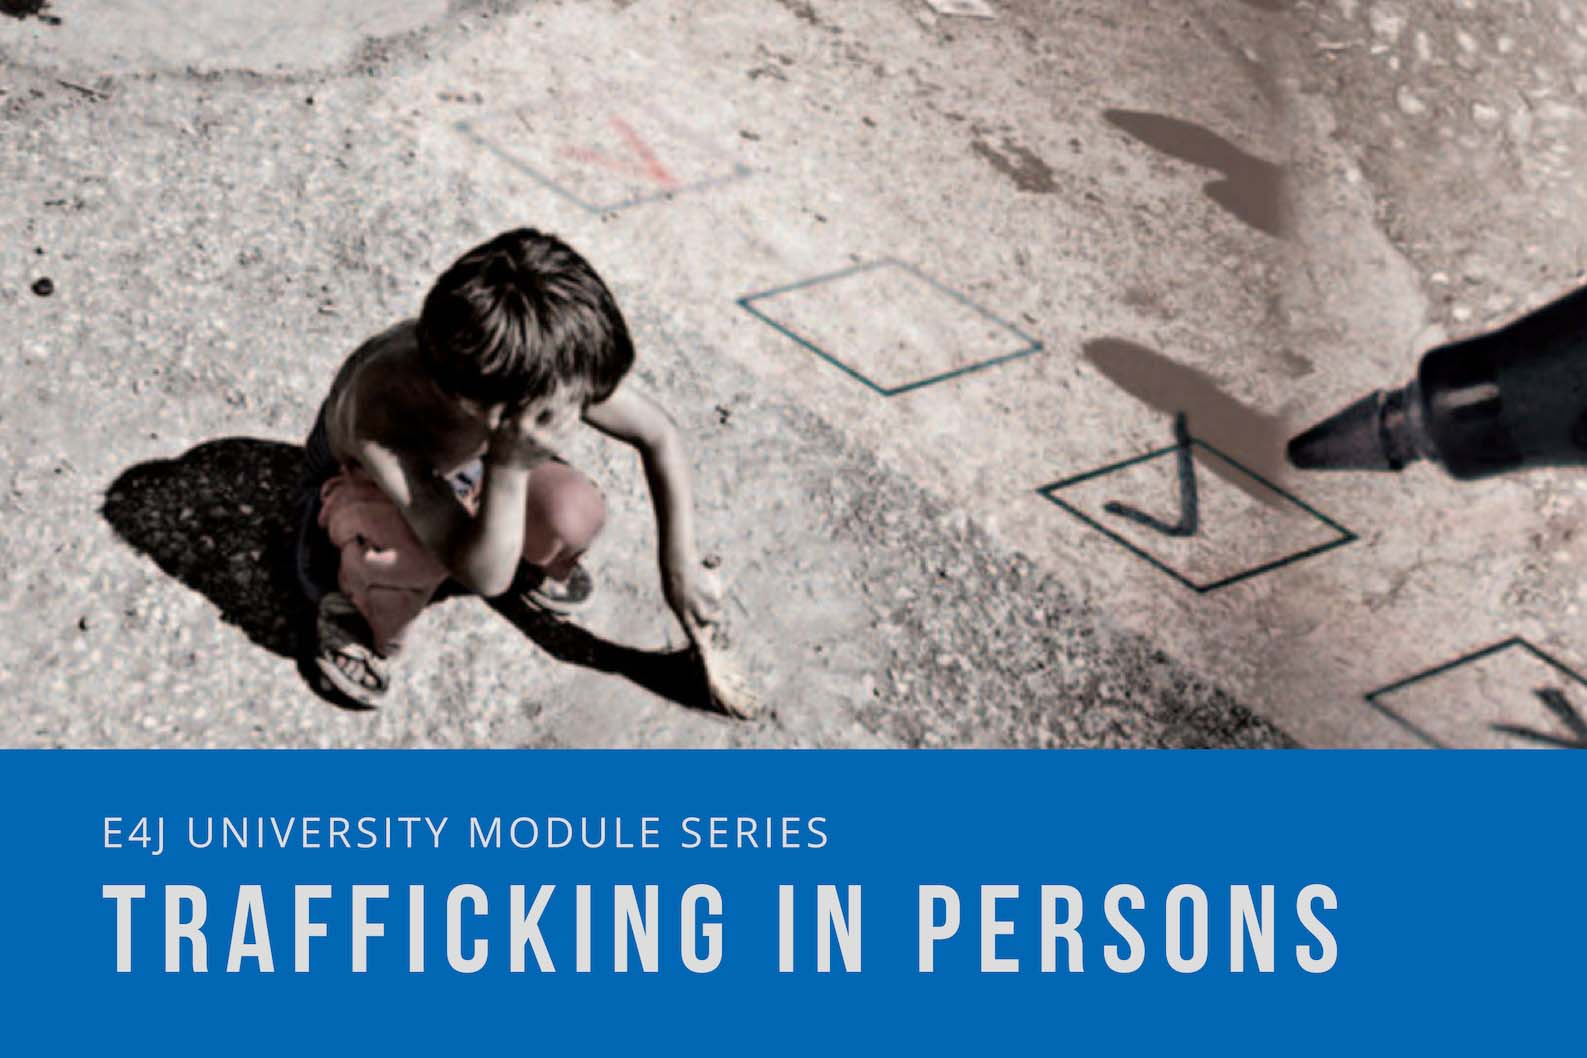 New UNODC university modules to teach about Trafficking in Persons, a crime that violates fundamental human rights